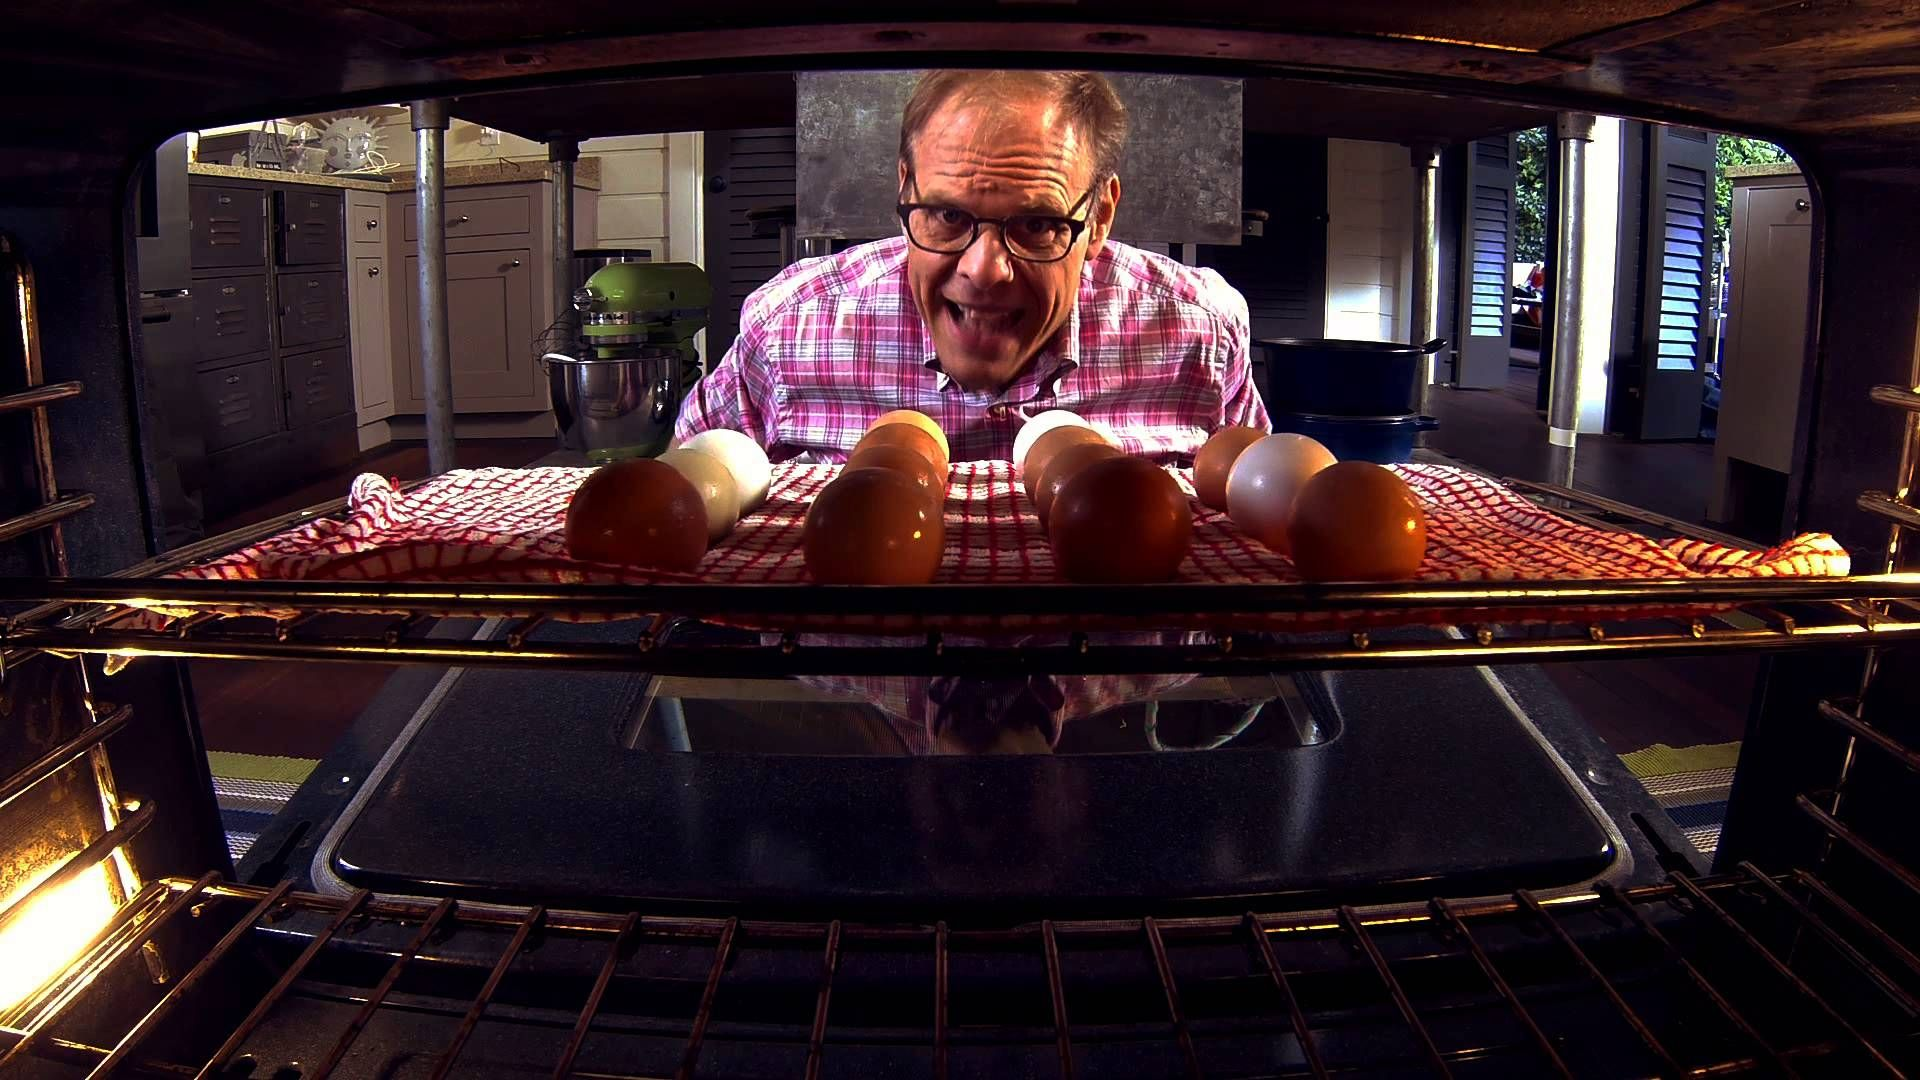 Alton Browns method of making hardcooked eggs in the oven Great